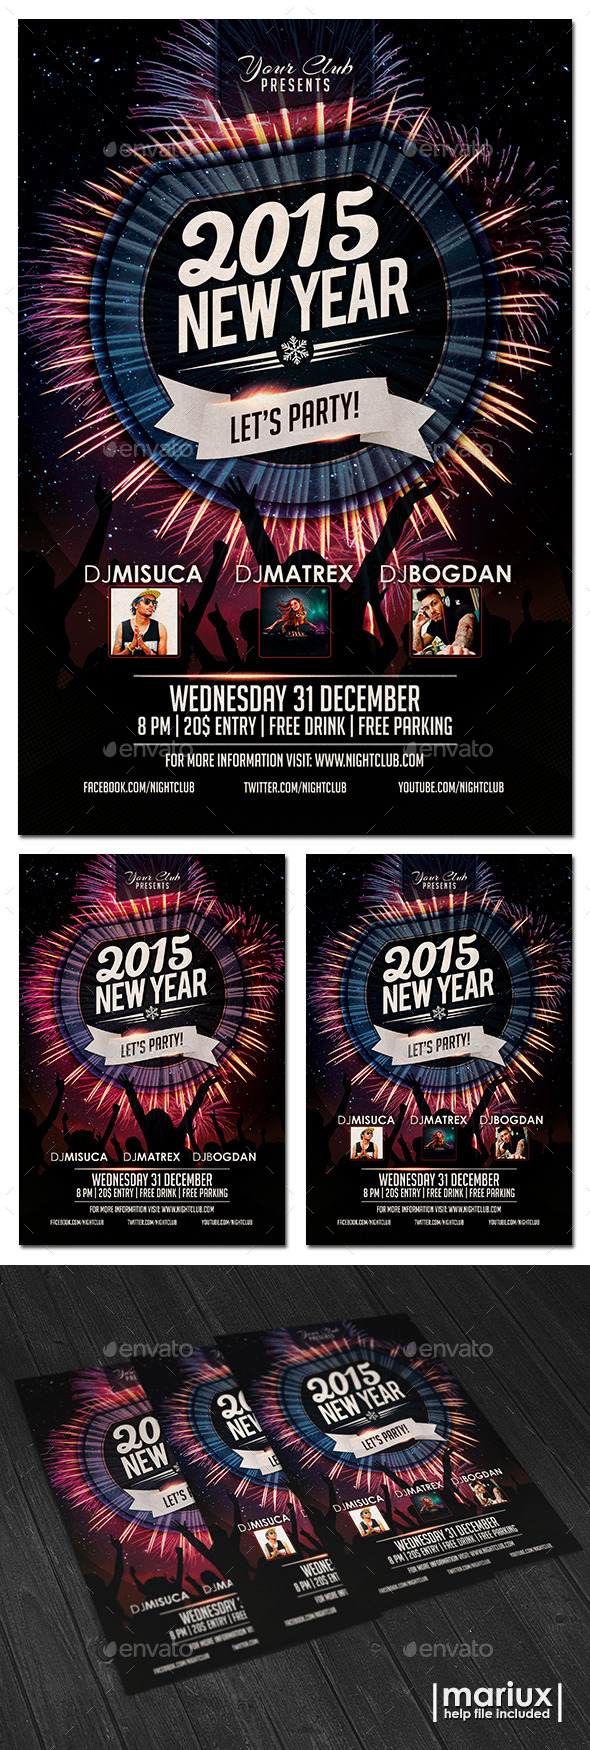 GraphicRiver New Year Party Flyer 9727377